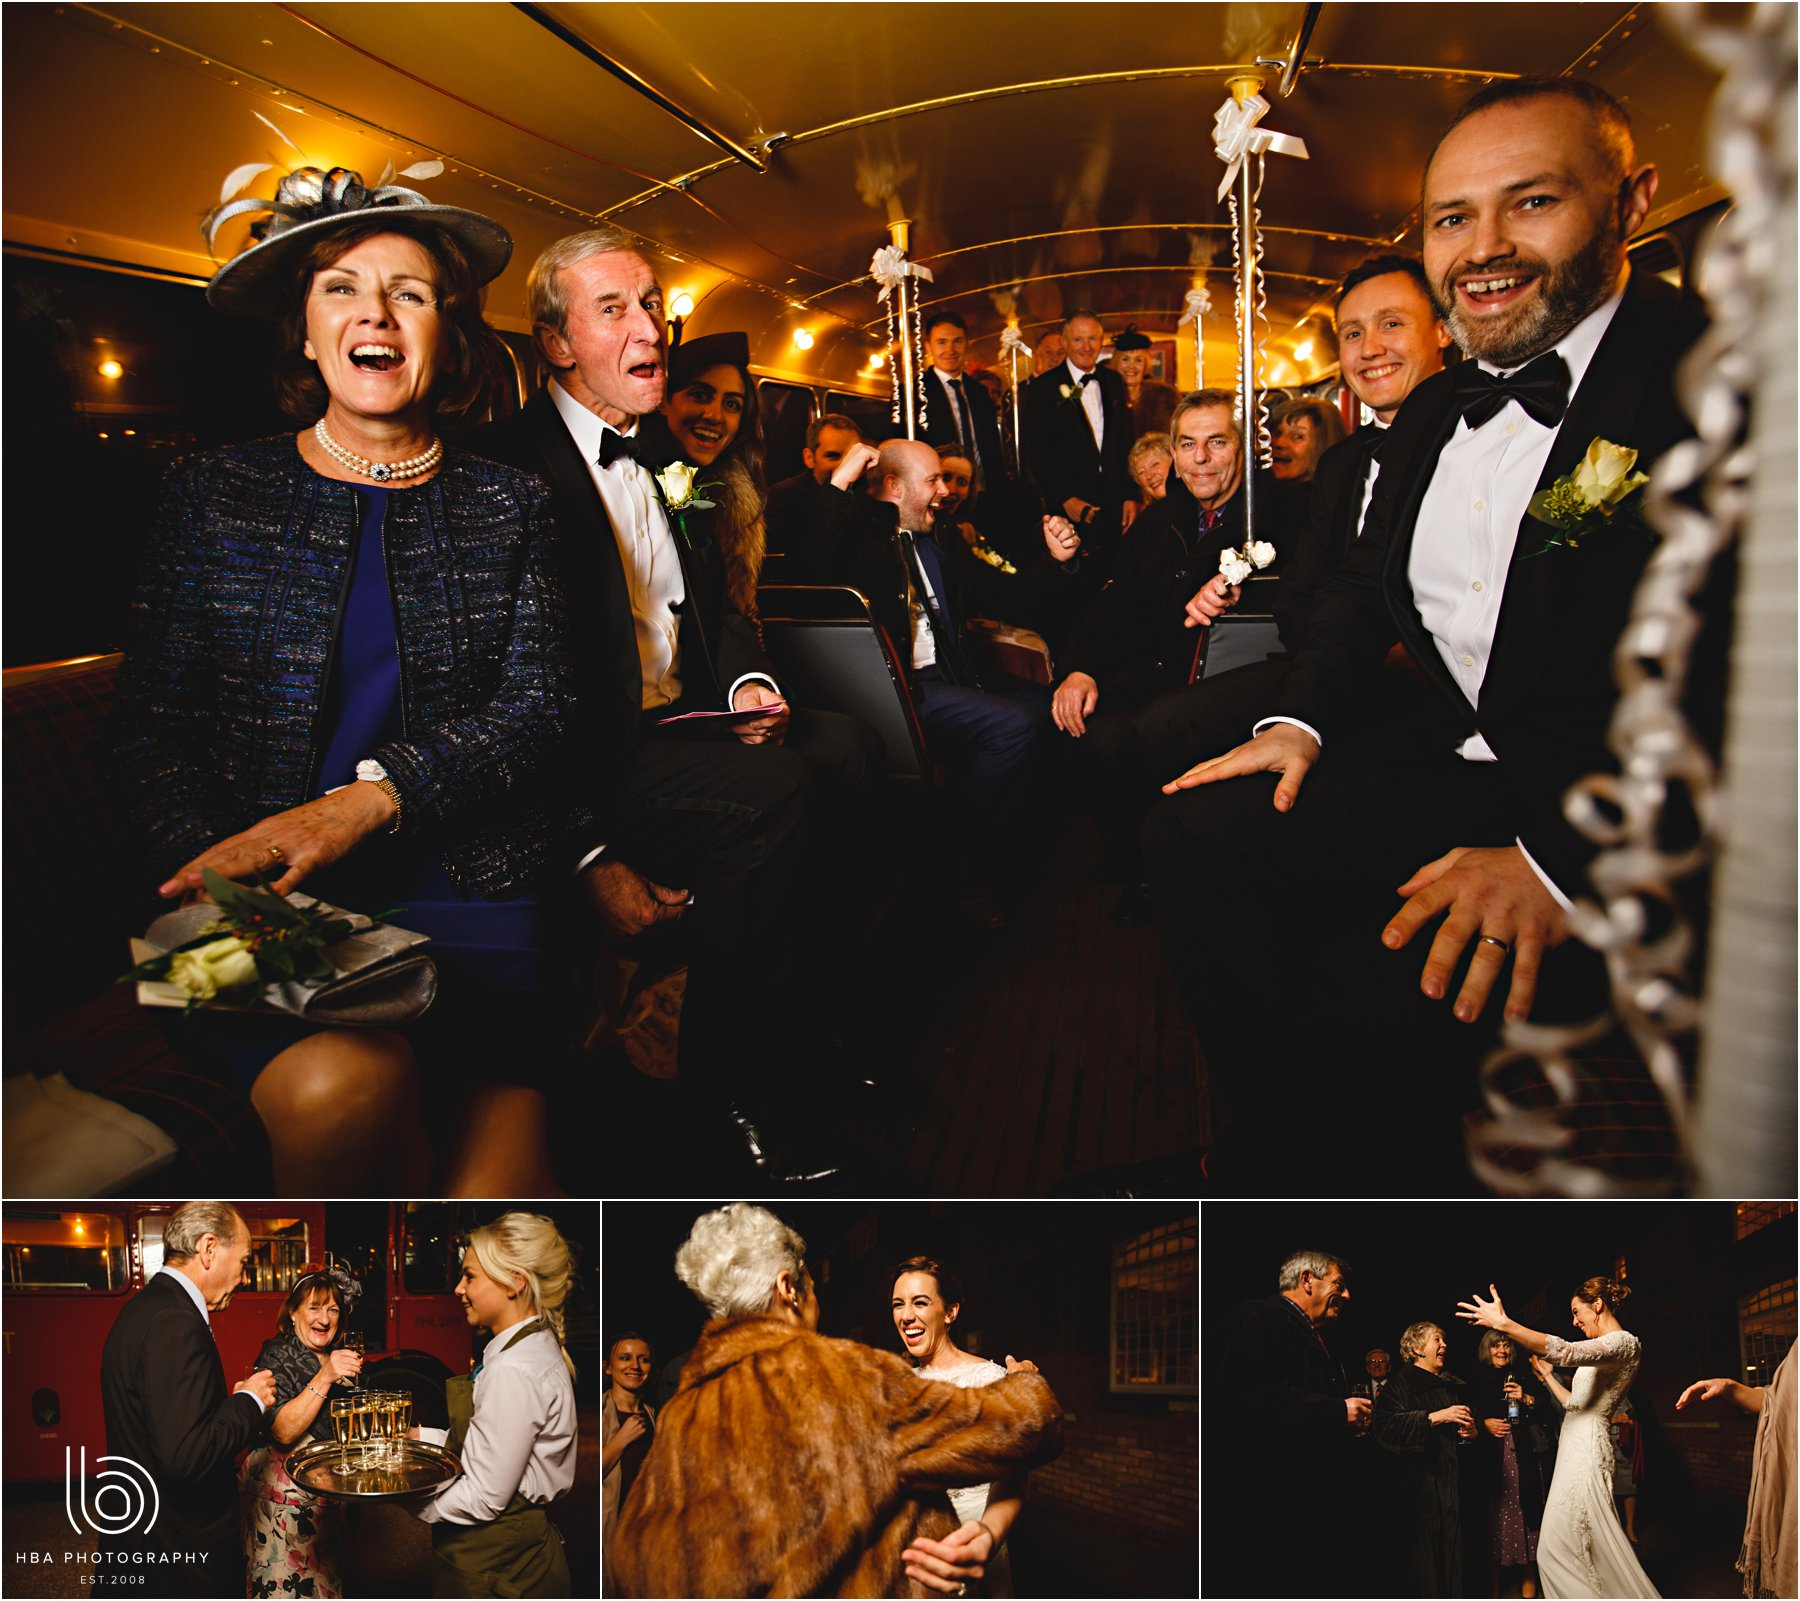 the wedding guests on the bus